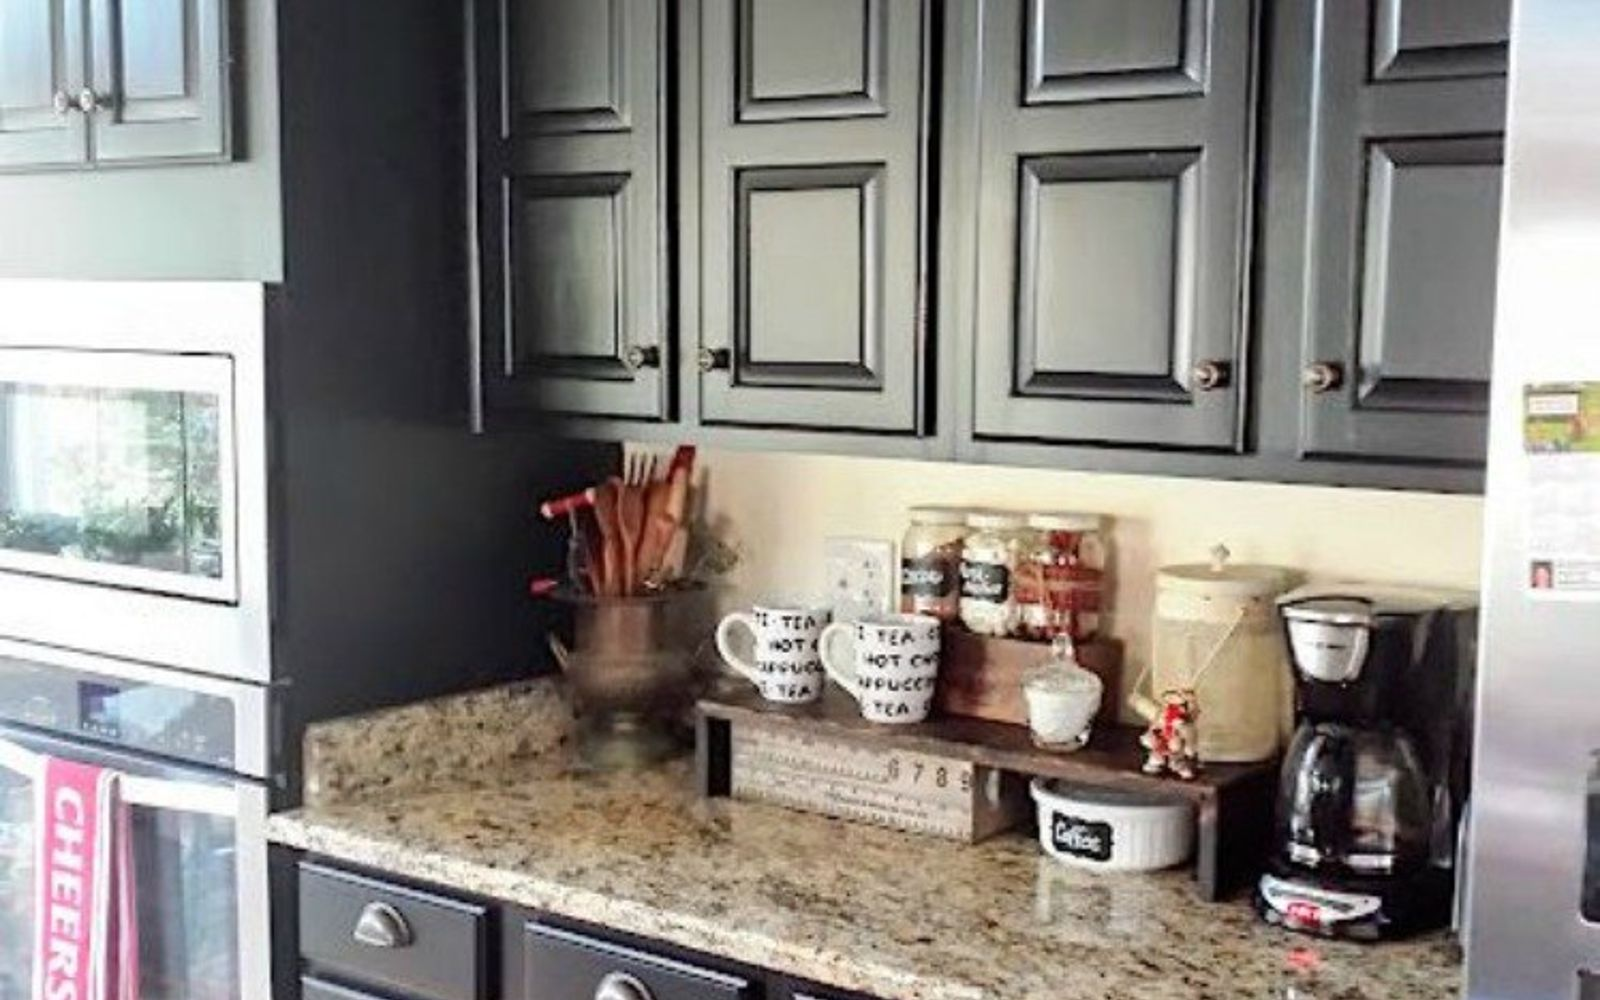 painting your kitchen cabinets white 12 reasons not to paint your kitchen cabinets white hometalk 24565